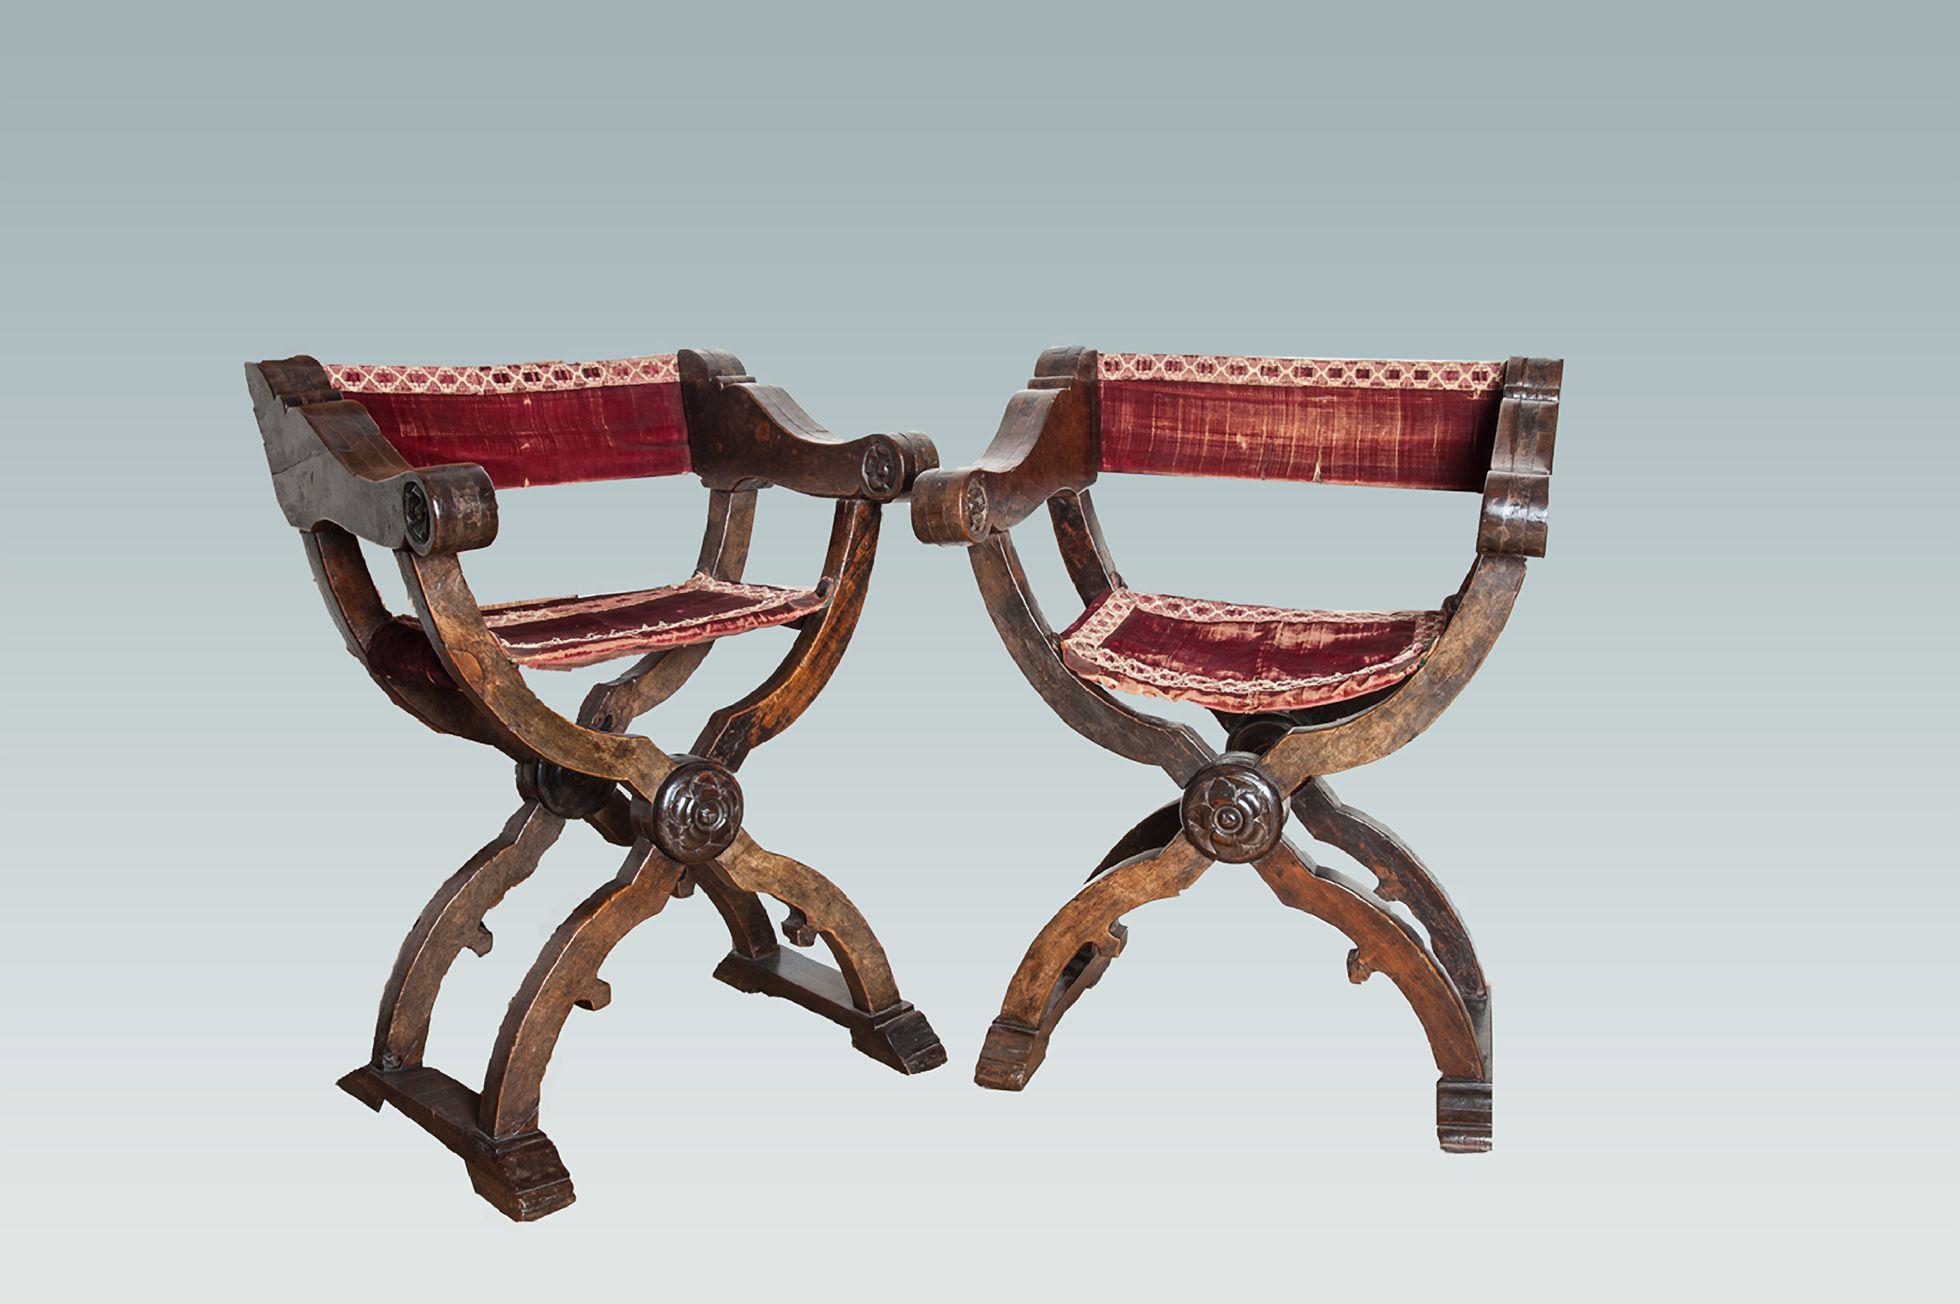 Rare pair of Italian 16th century X frame chairs circa 1530 1540